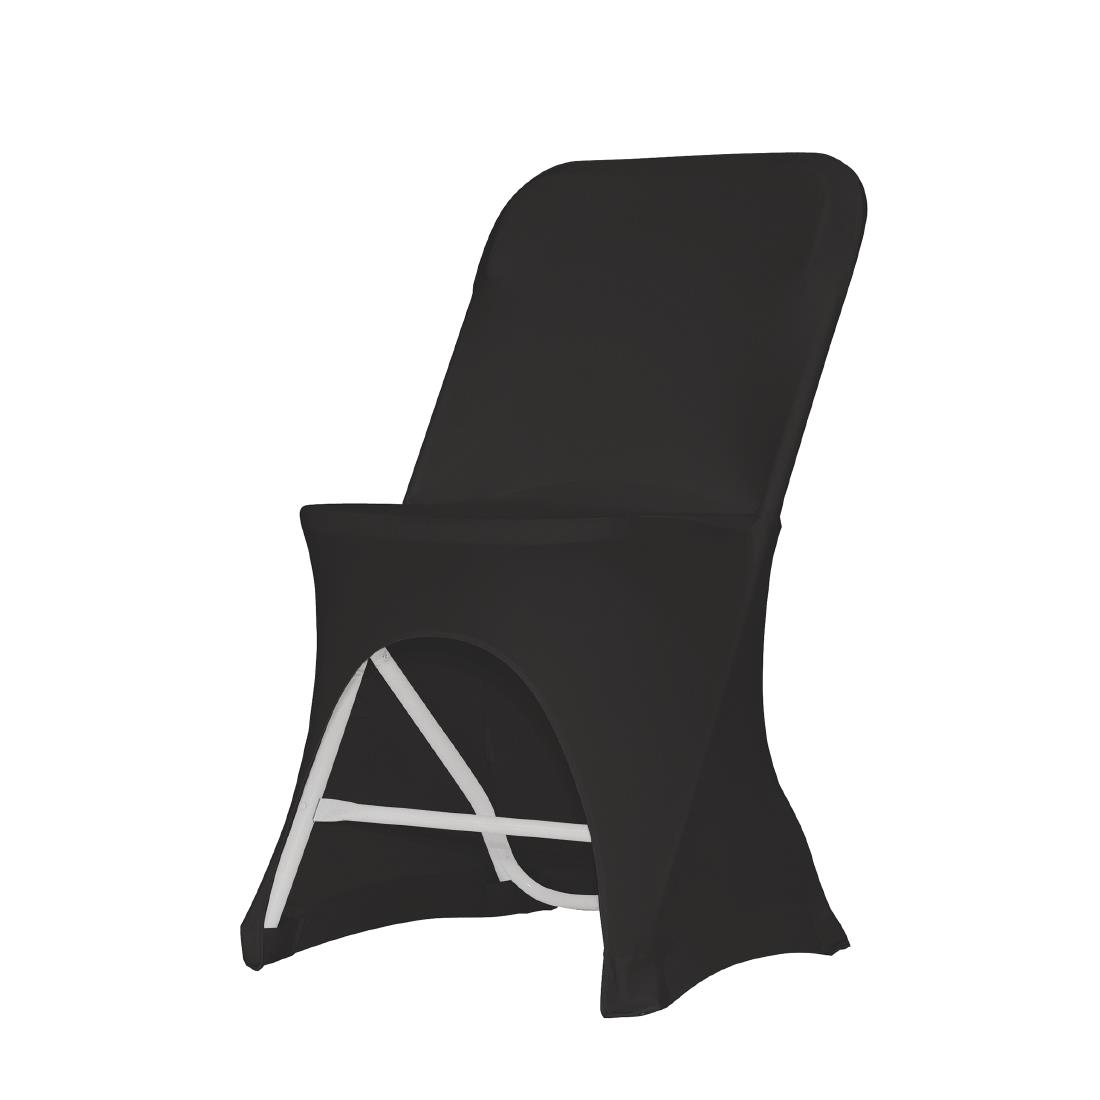 Image of ZOWN Alex-K Side Chair Stretch Cover Black